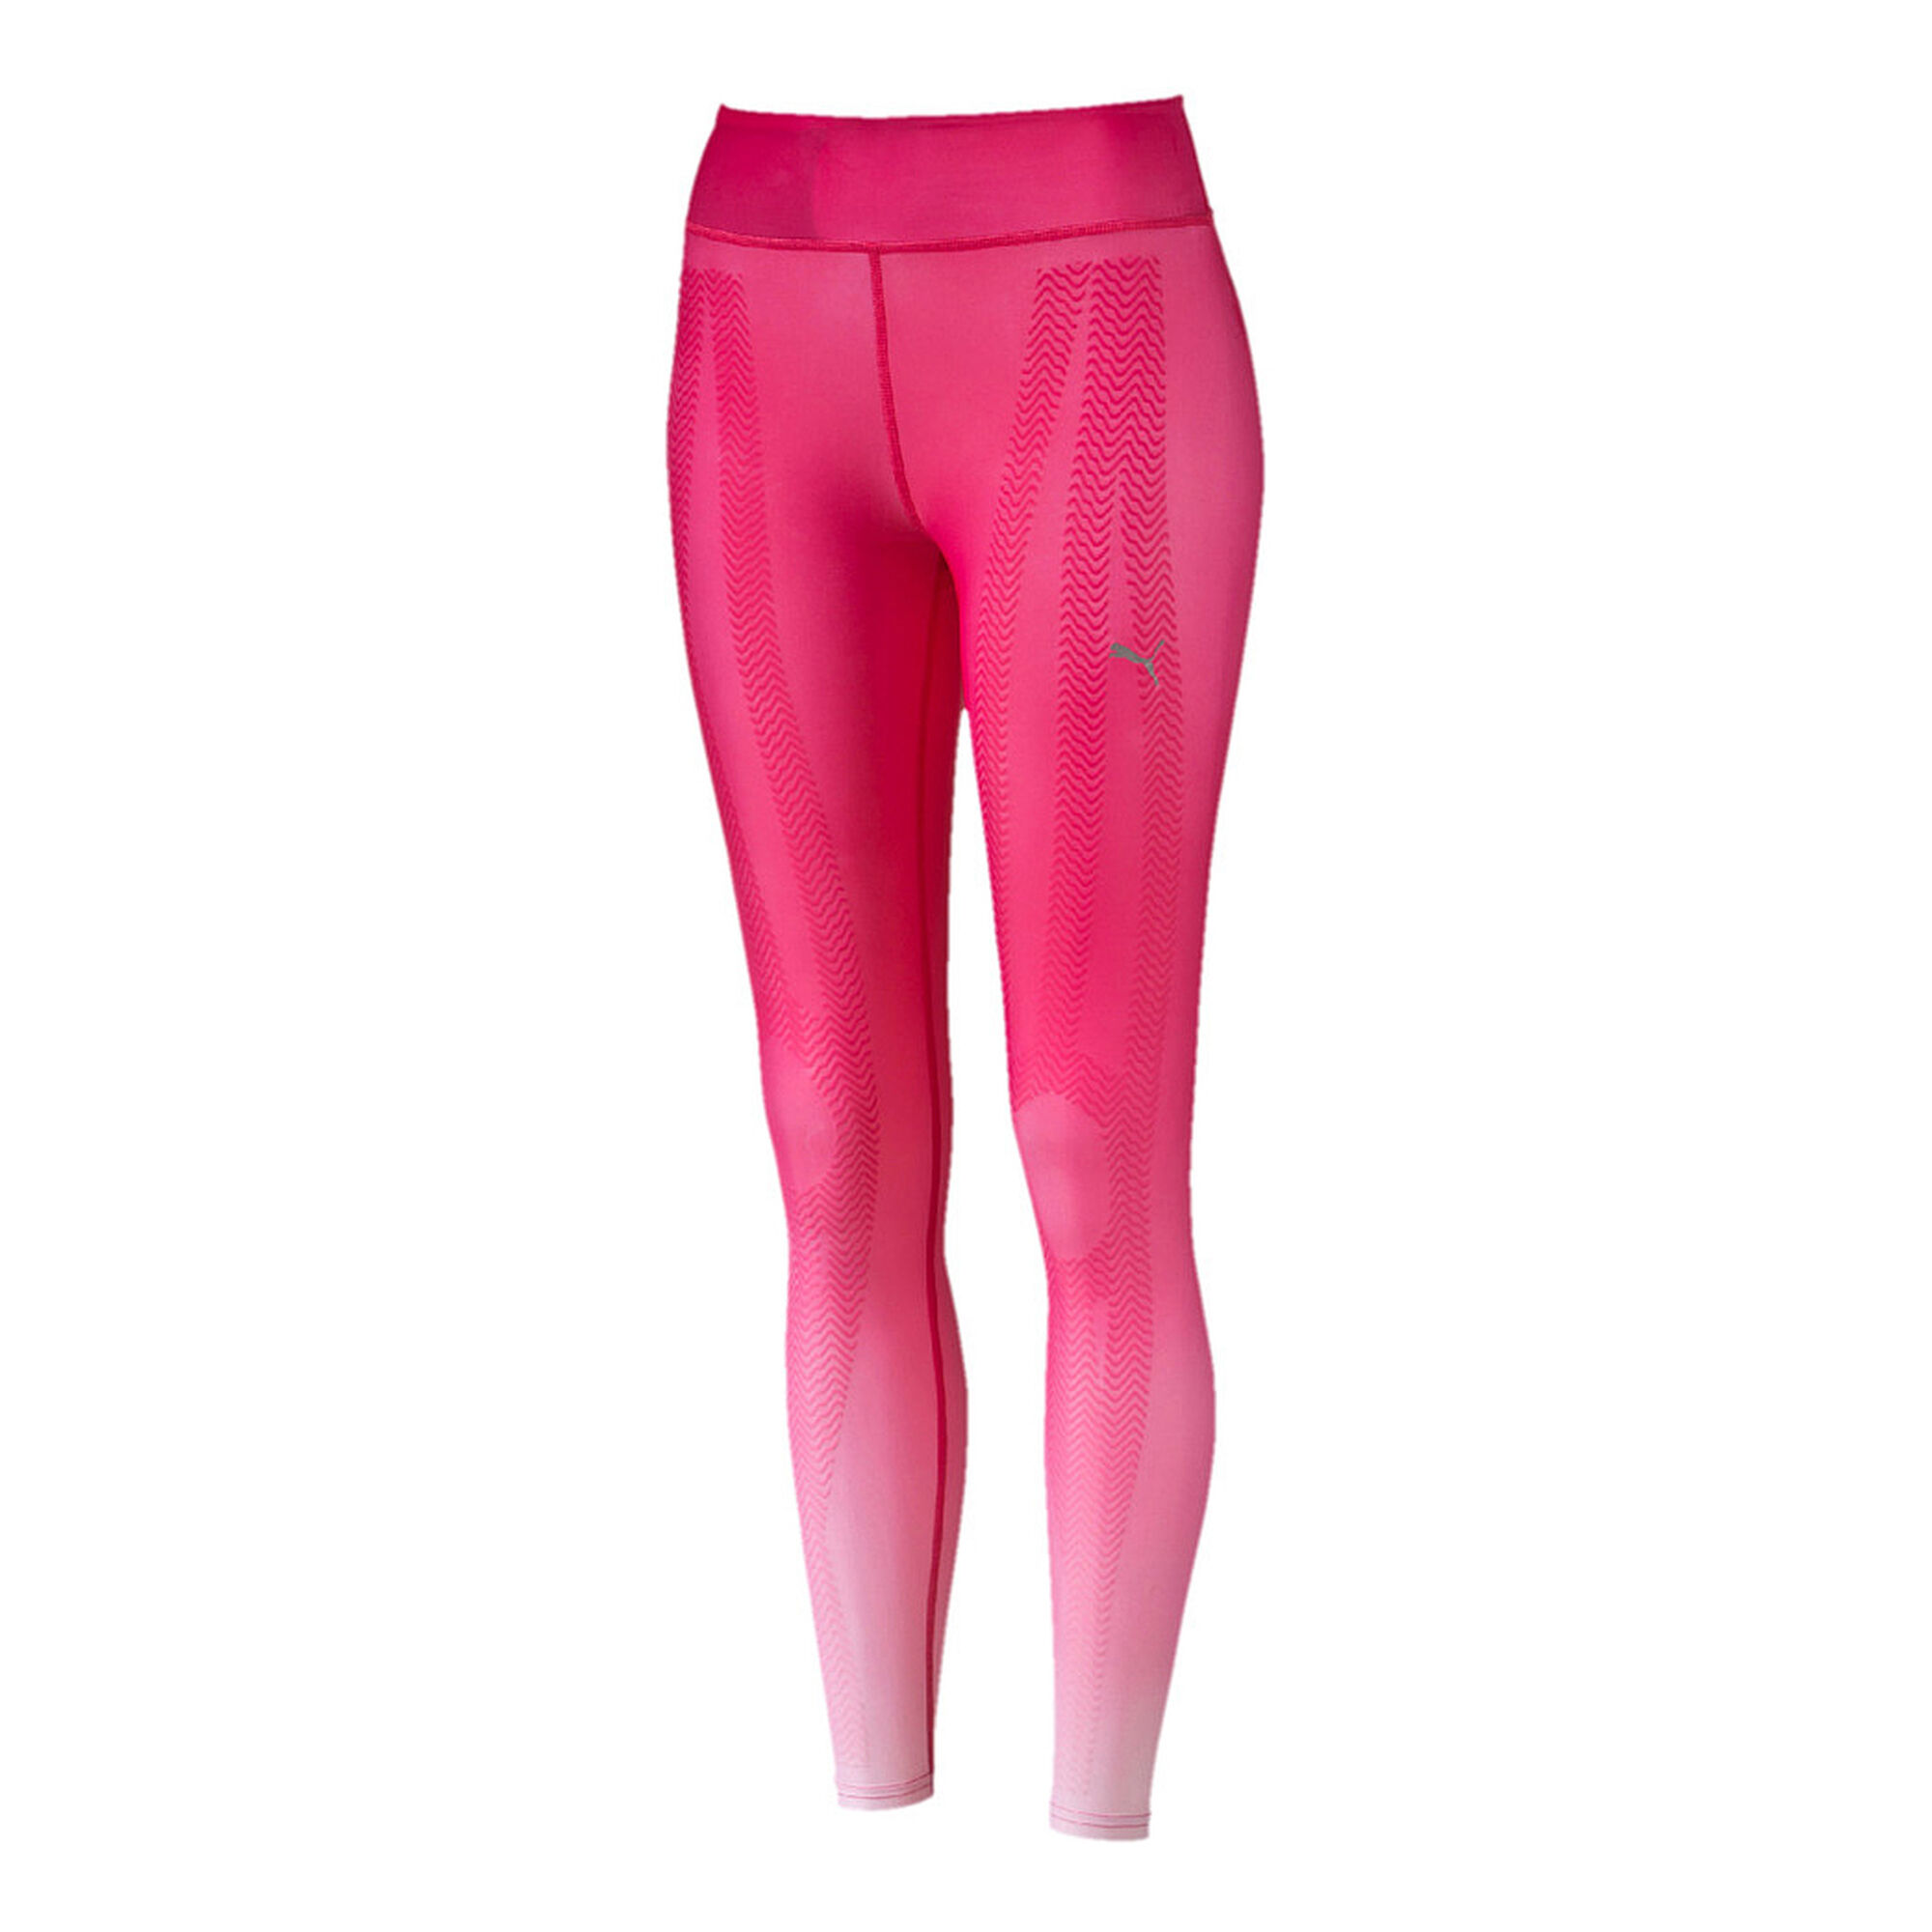 32723210706c13 buy Puma PB ACTV Power Running Pants Women - Red, Pink online ...